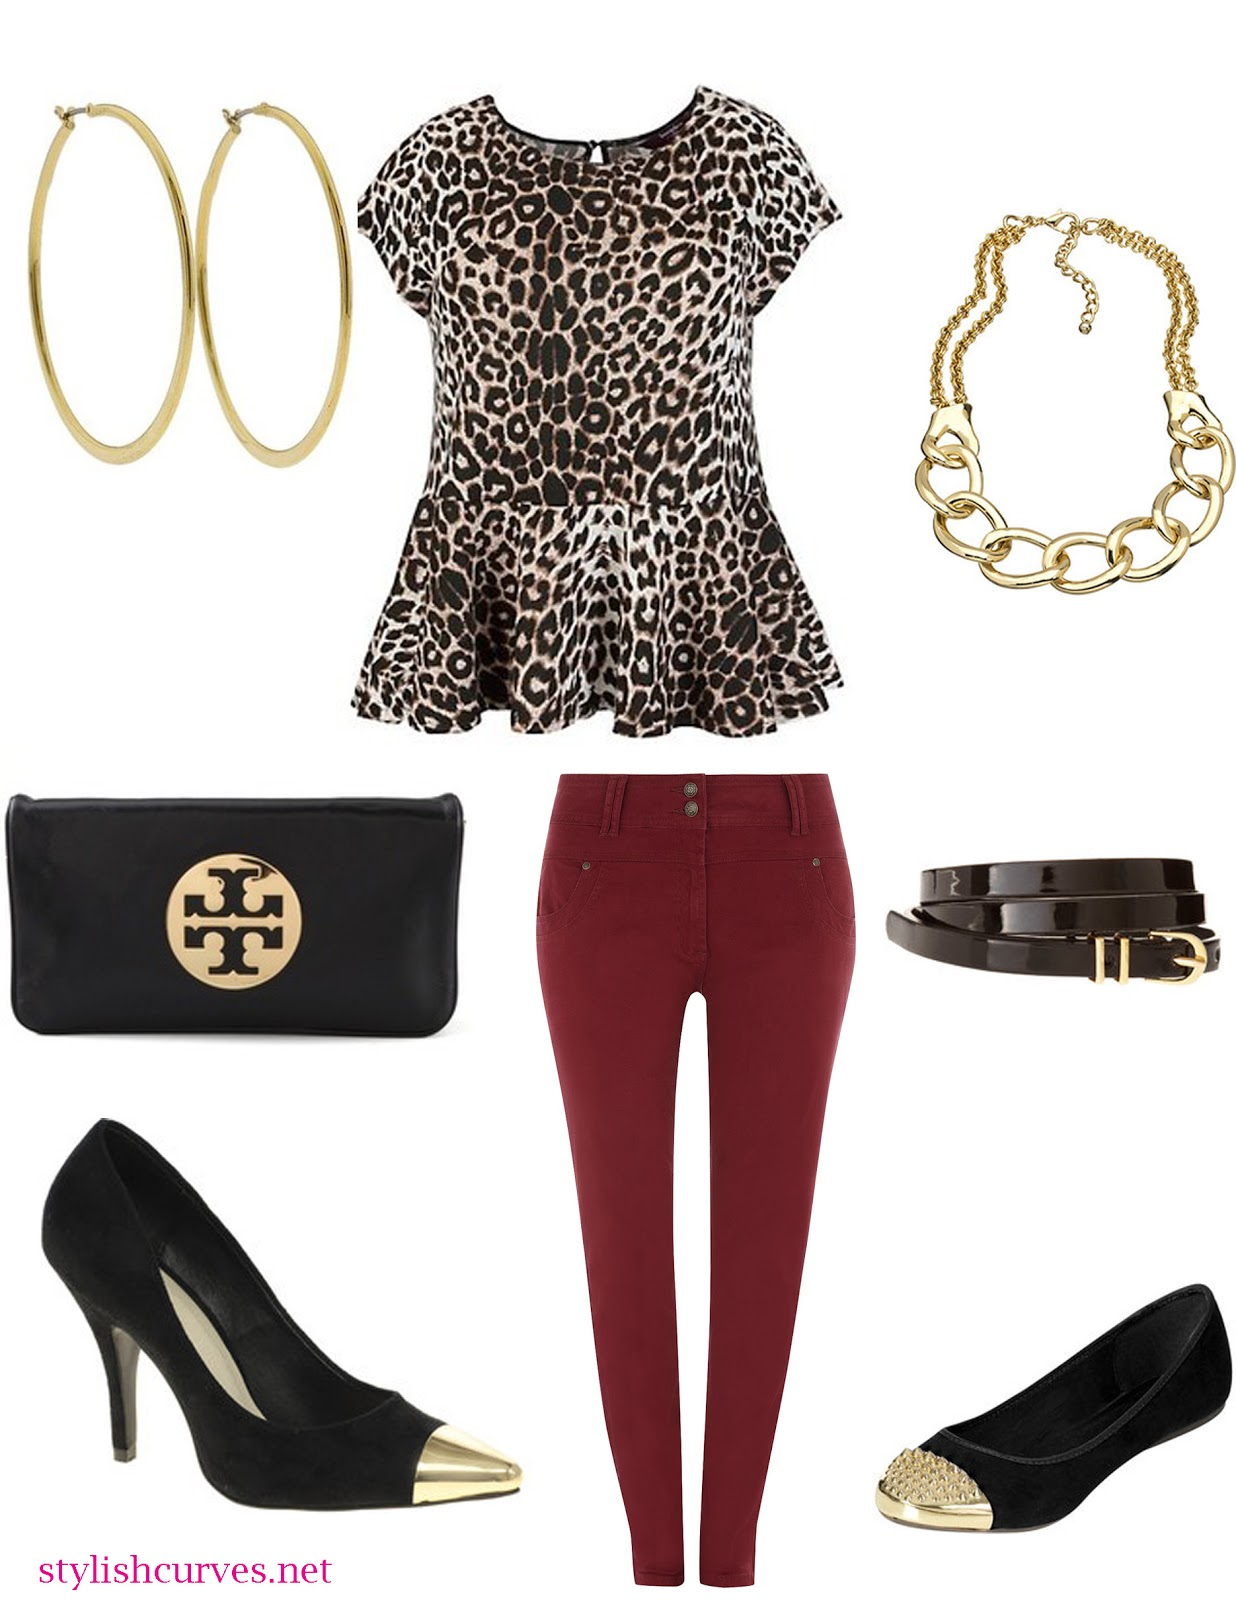 Outfit ideas: 3 cute looks for st. Patrick day